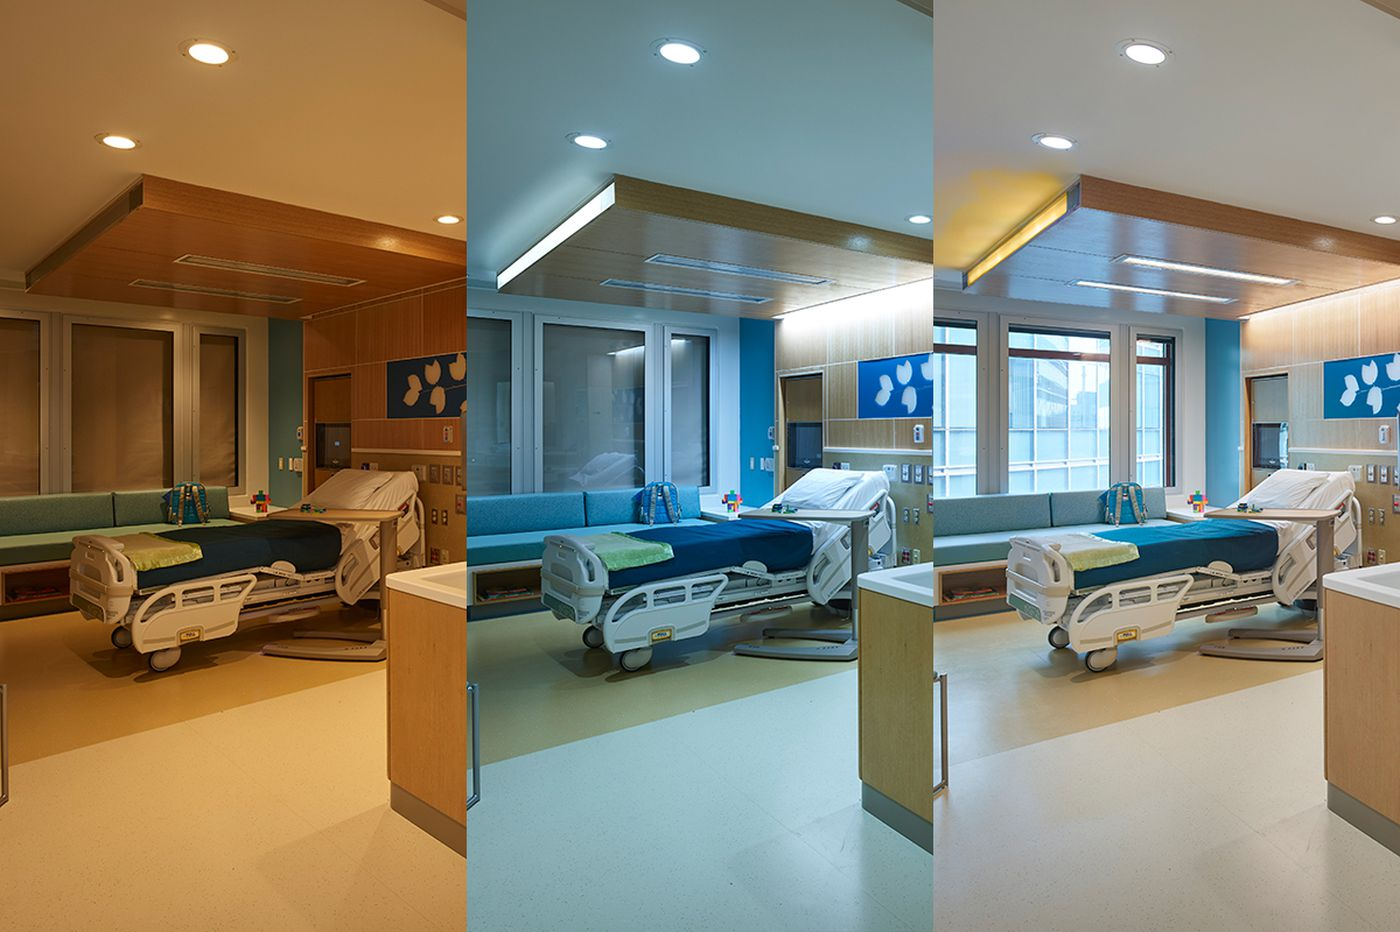 The era of circadian lighting in health care is dawning